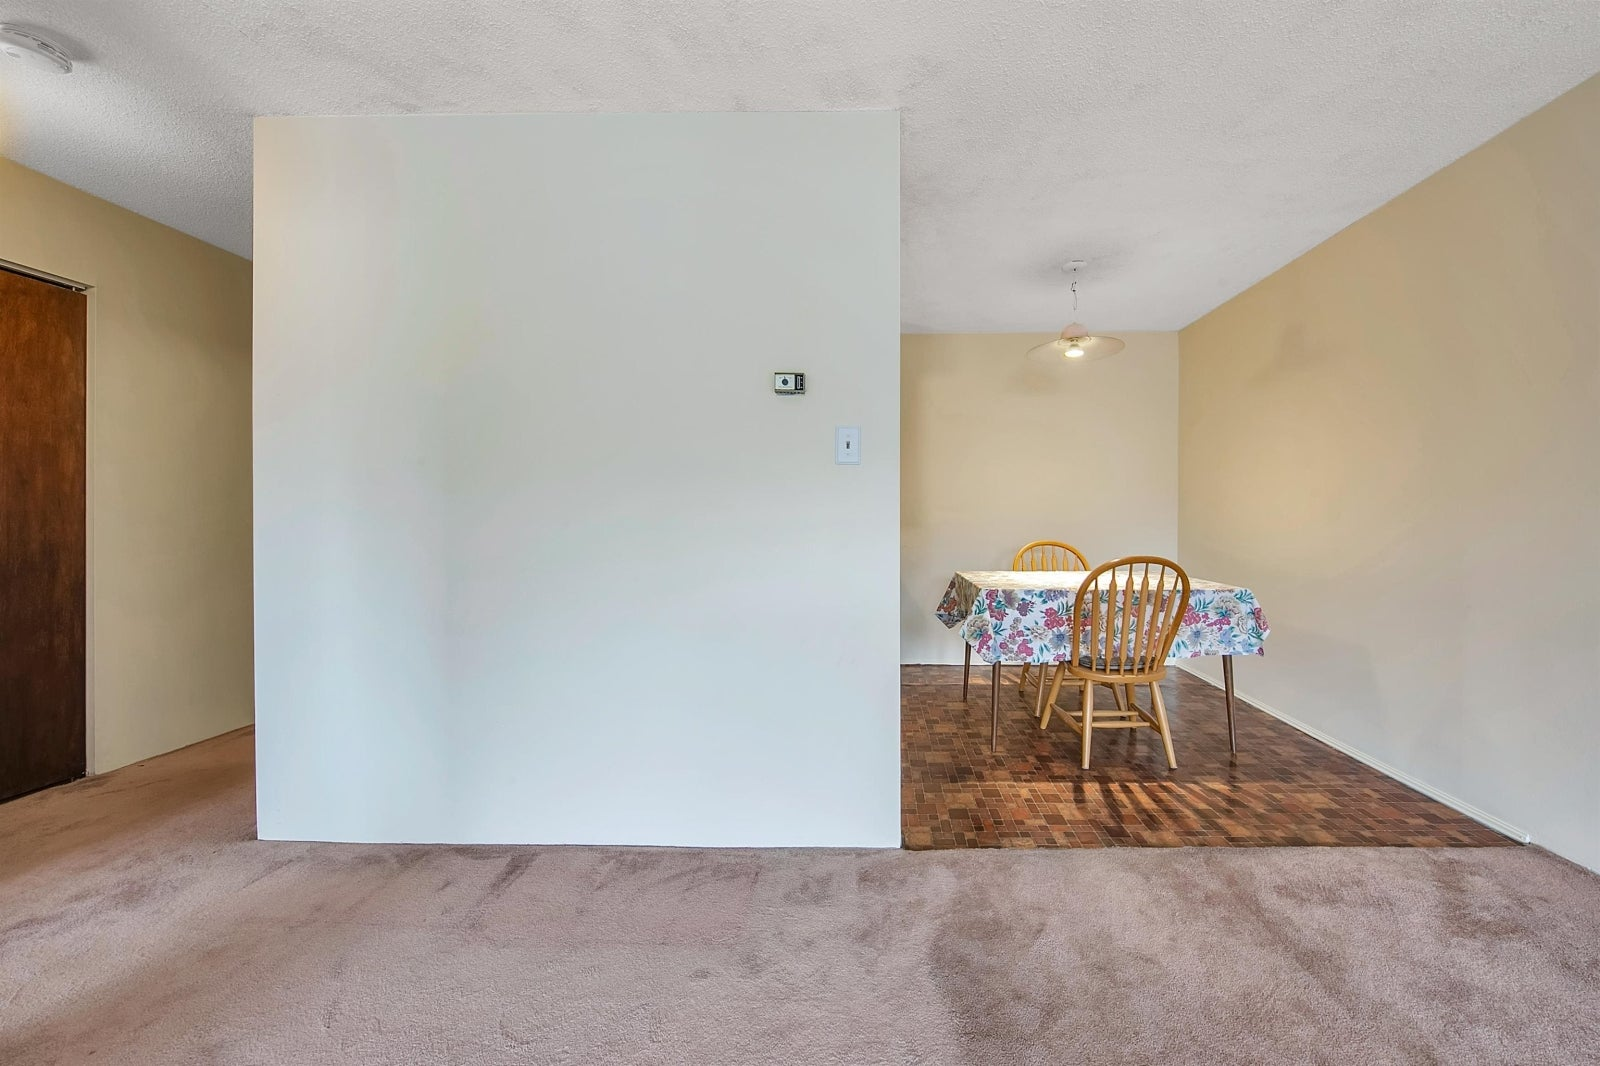 306 1345 CHESTERFIELD AVENUE - Central Lonsdale Apartment/Condo for sale, 1 Bedroom (R2622121) #13